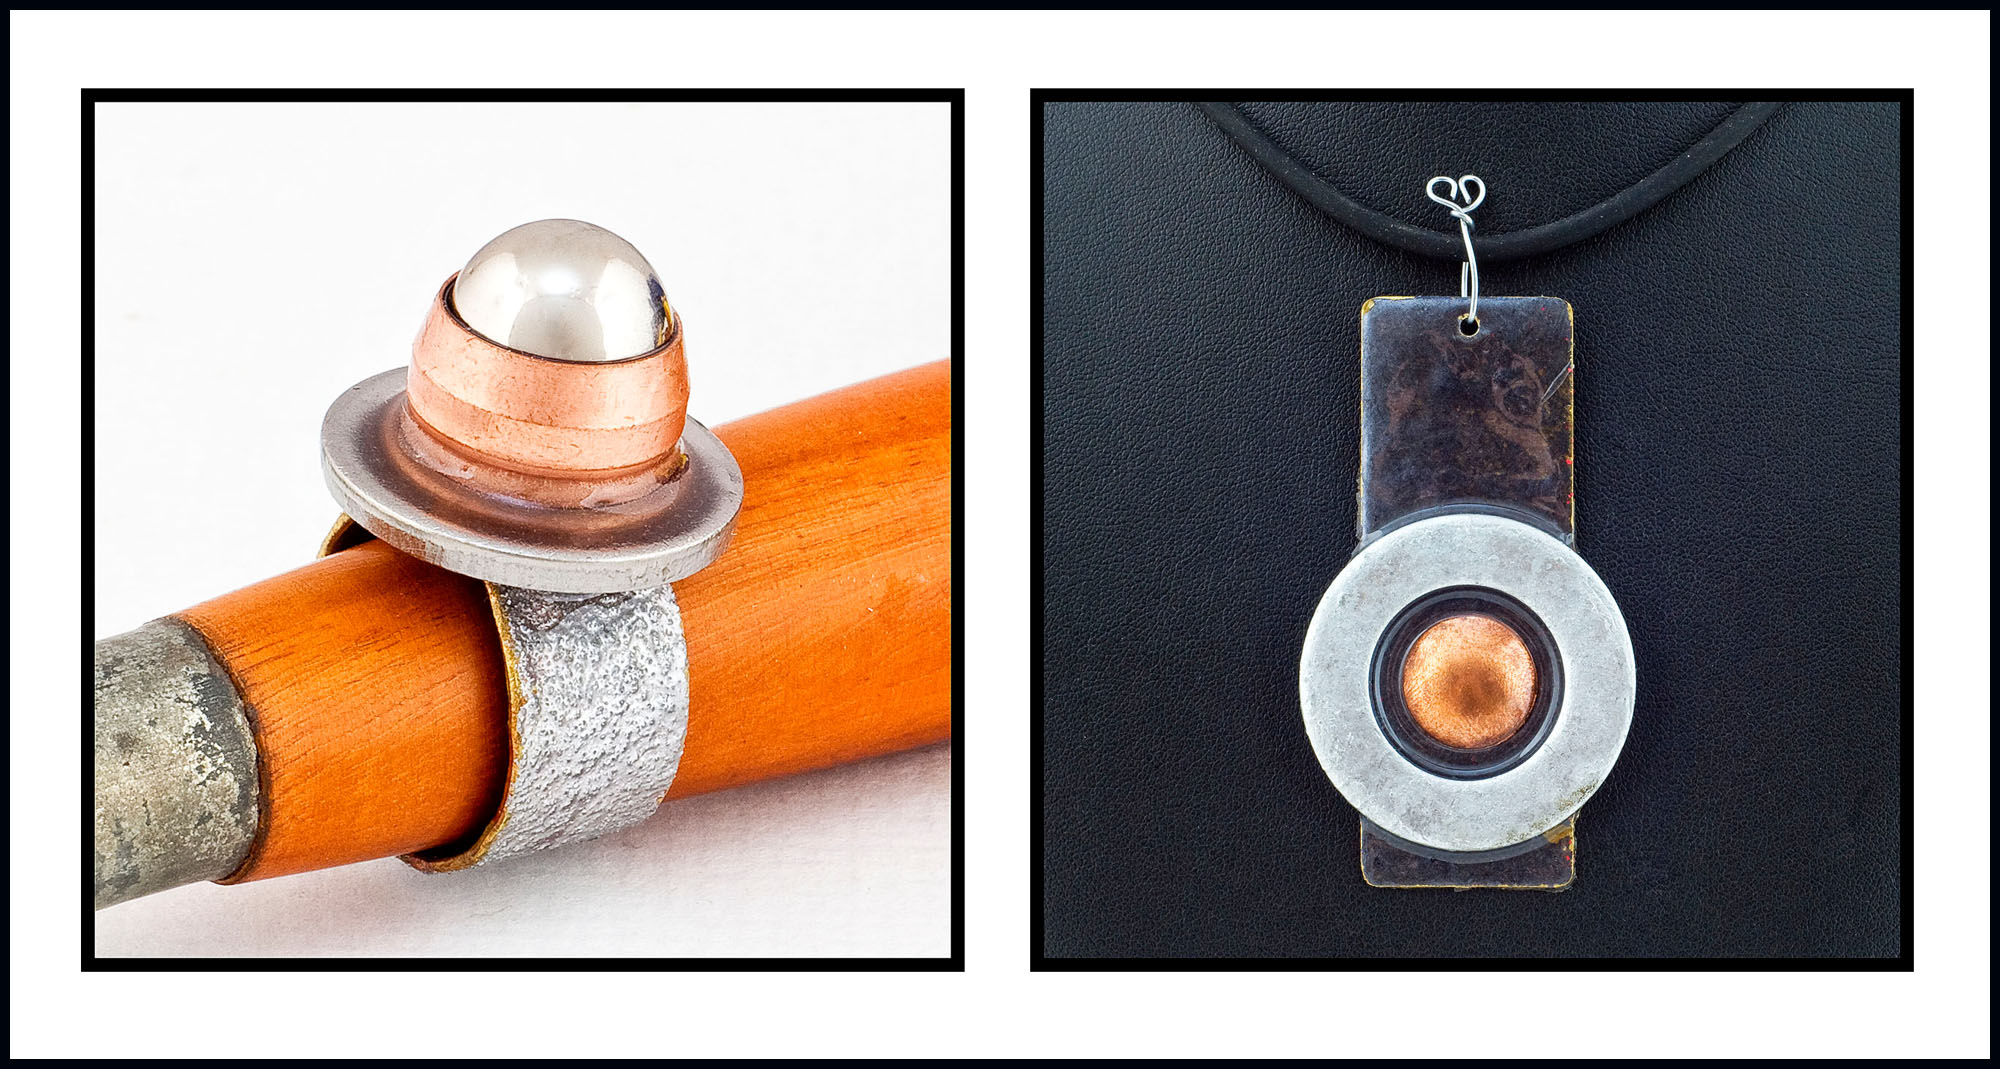 The ring setting is made with a washer, some copper tubing and a ball bearing. I made the pendant with copper, a large washer, some pewter enamel, galvanised steel wire and resin.